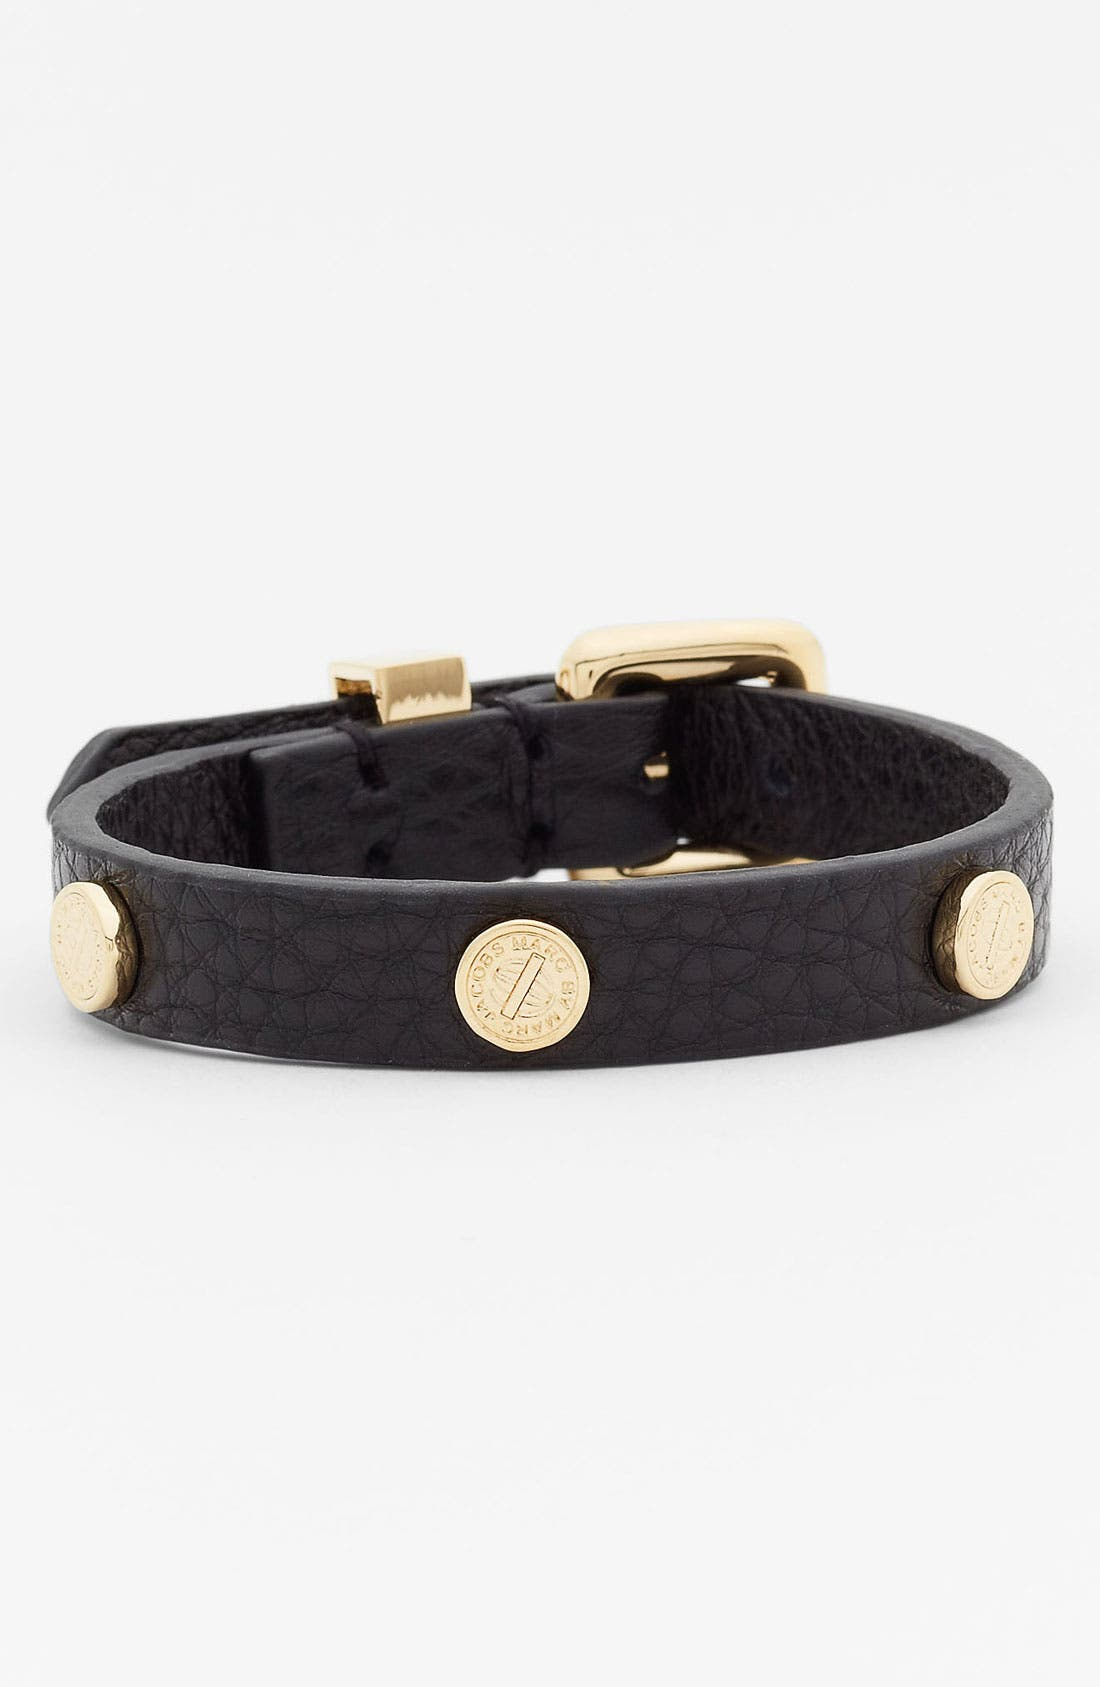 Main Image - MARC BY MARC JACOBS 'Turnlock' Leather Bracelet